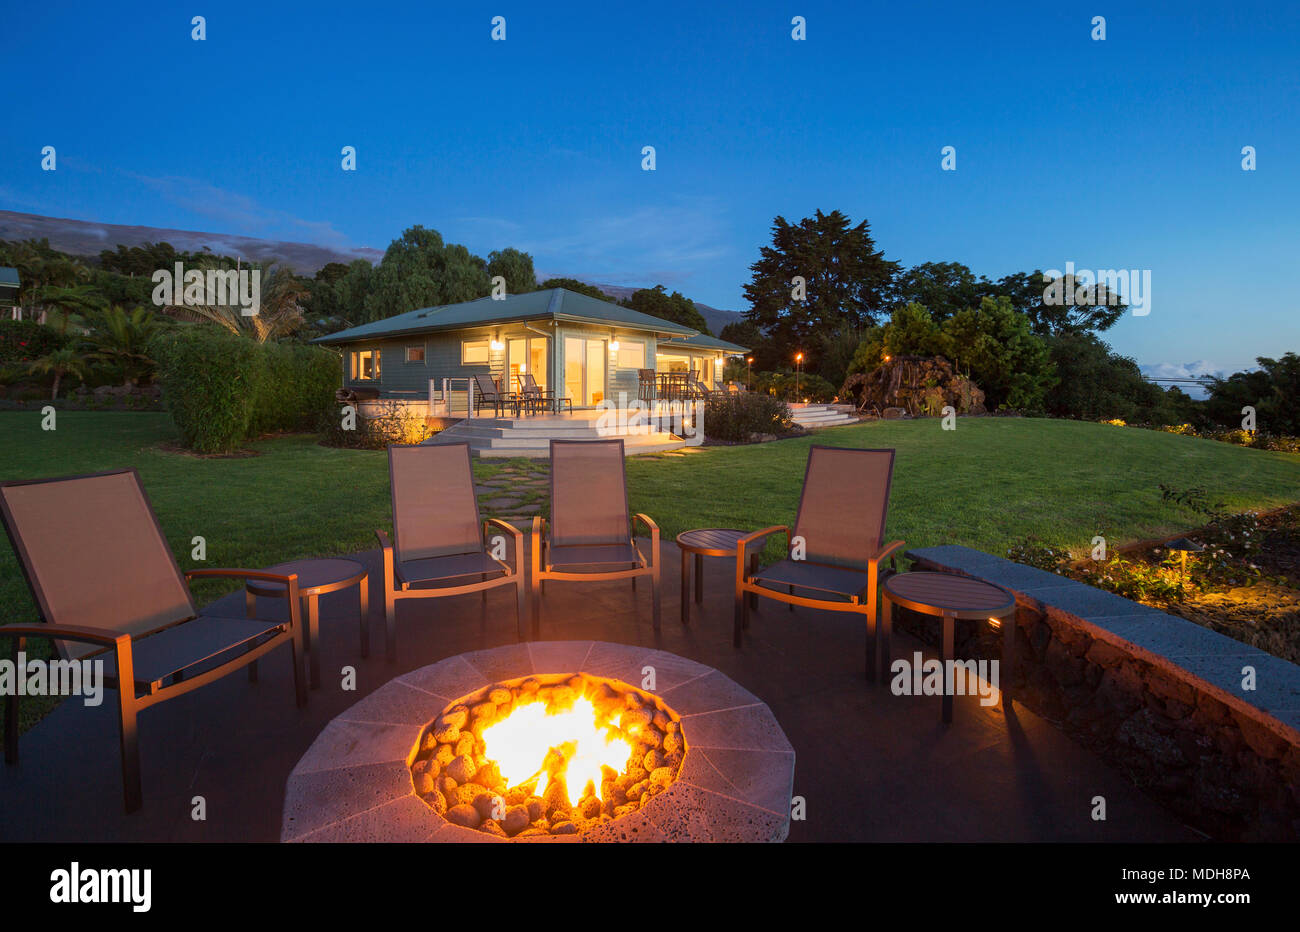 Luxury Backyard Fire Pit At Sunset - Stock Image